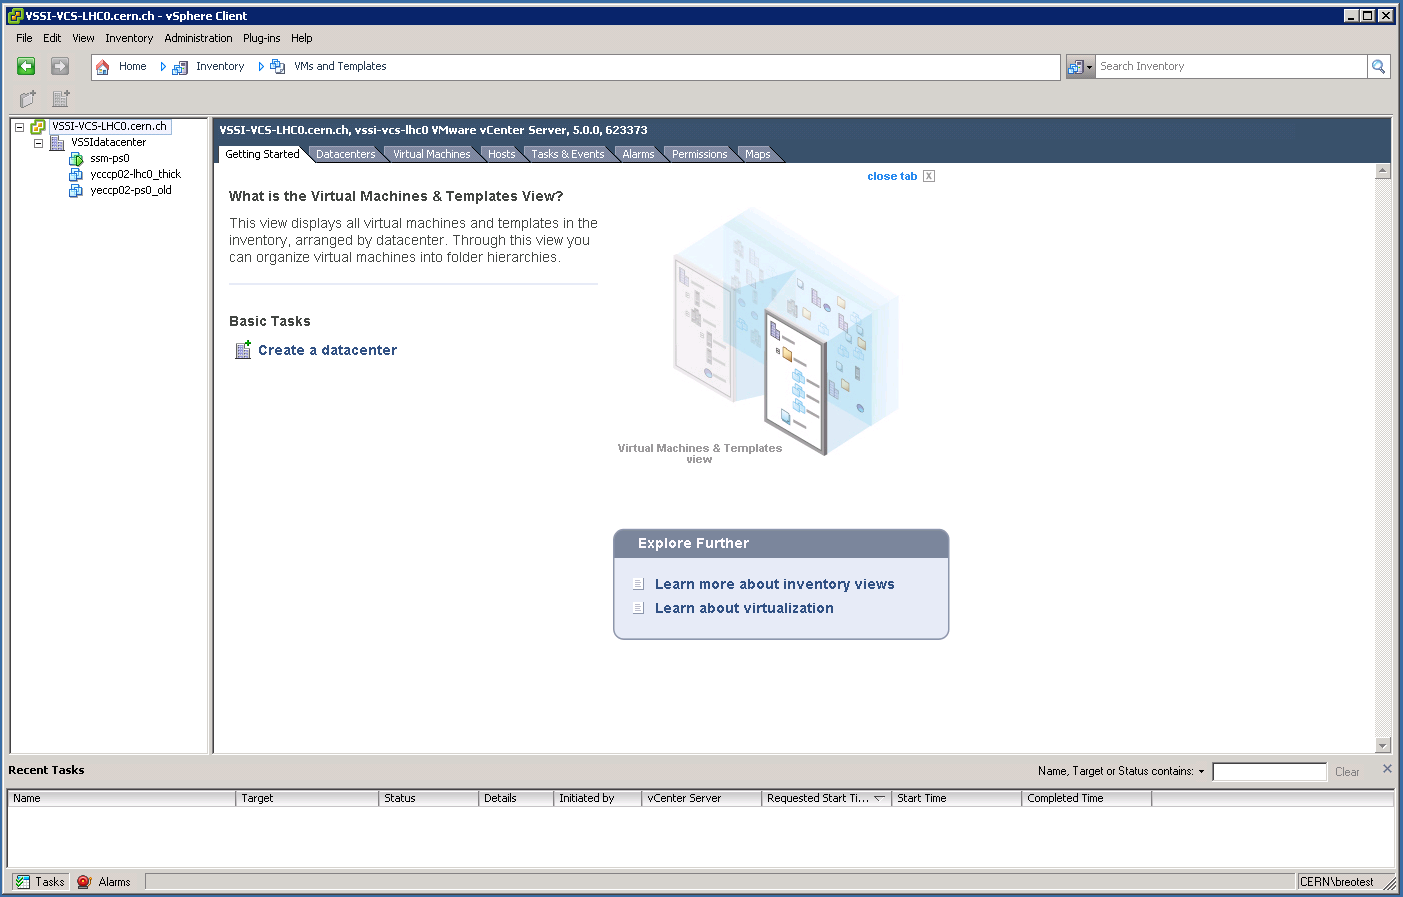 vSphere Client: VMs and Templates